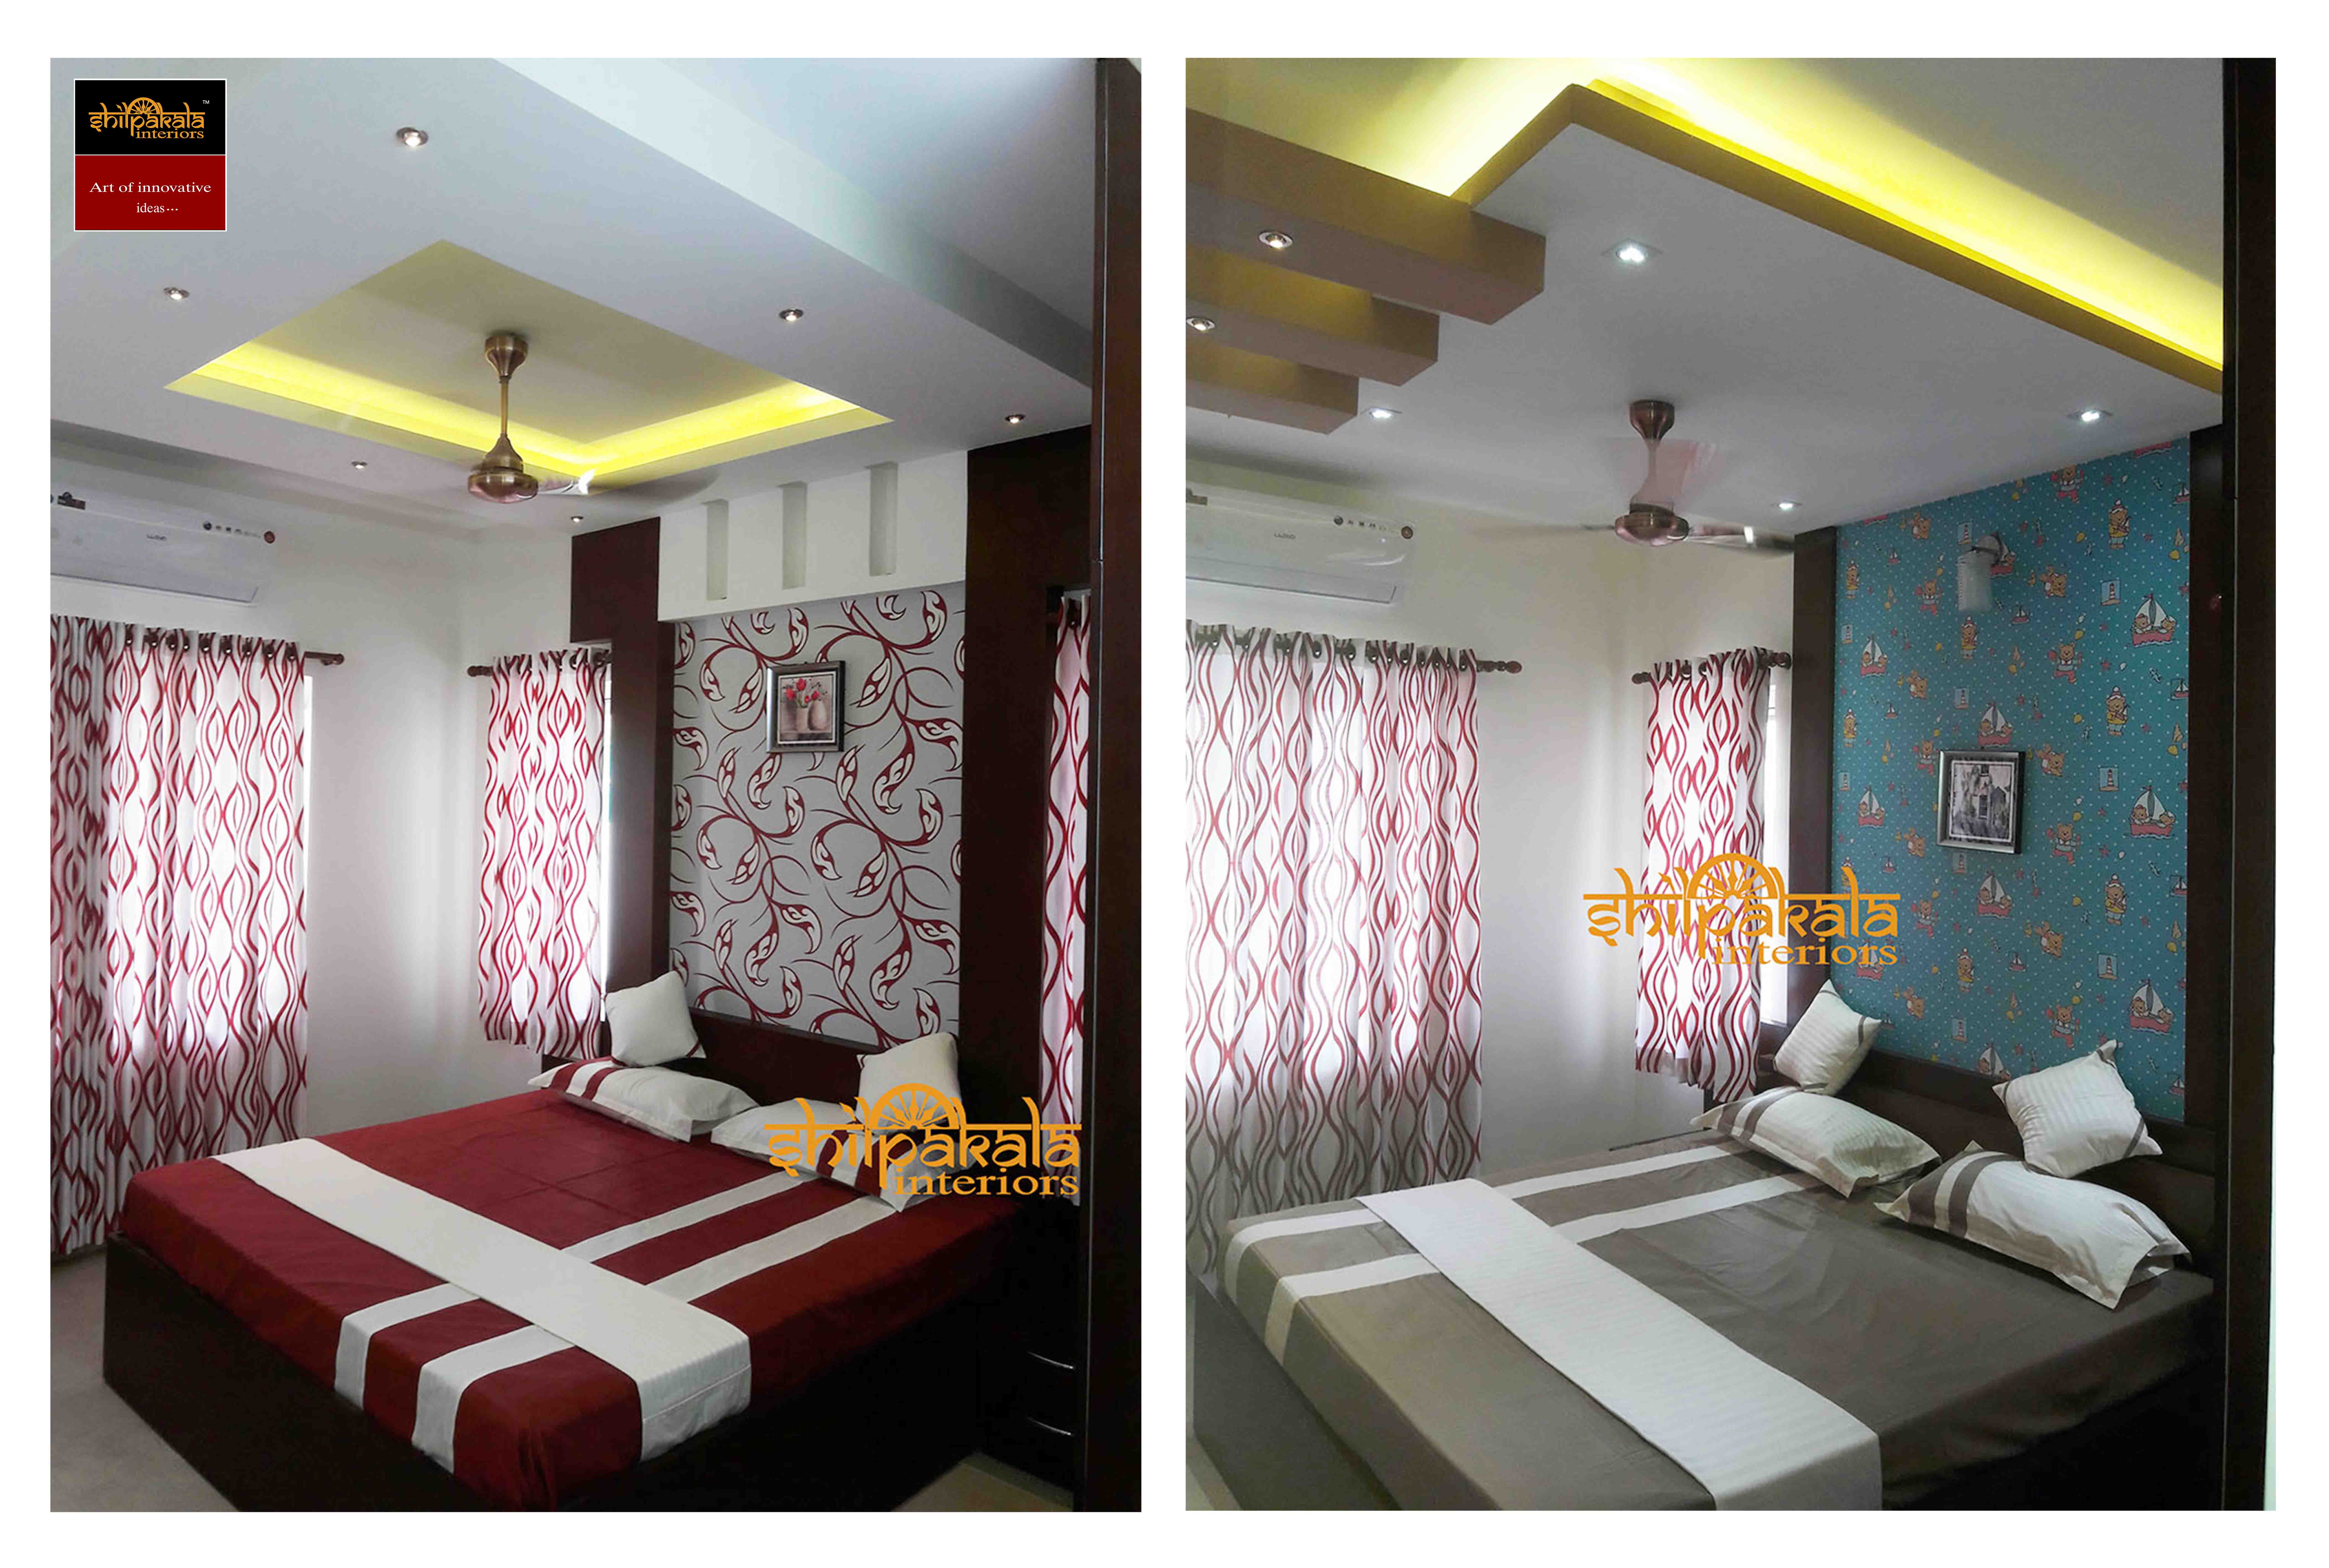 Four Bedroom Interior Design Turn Key Packages For Home Kerala